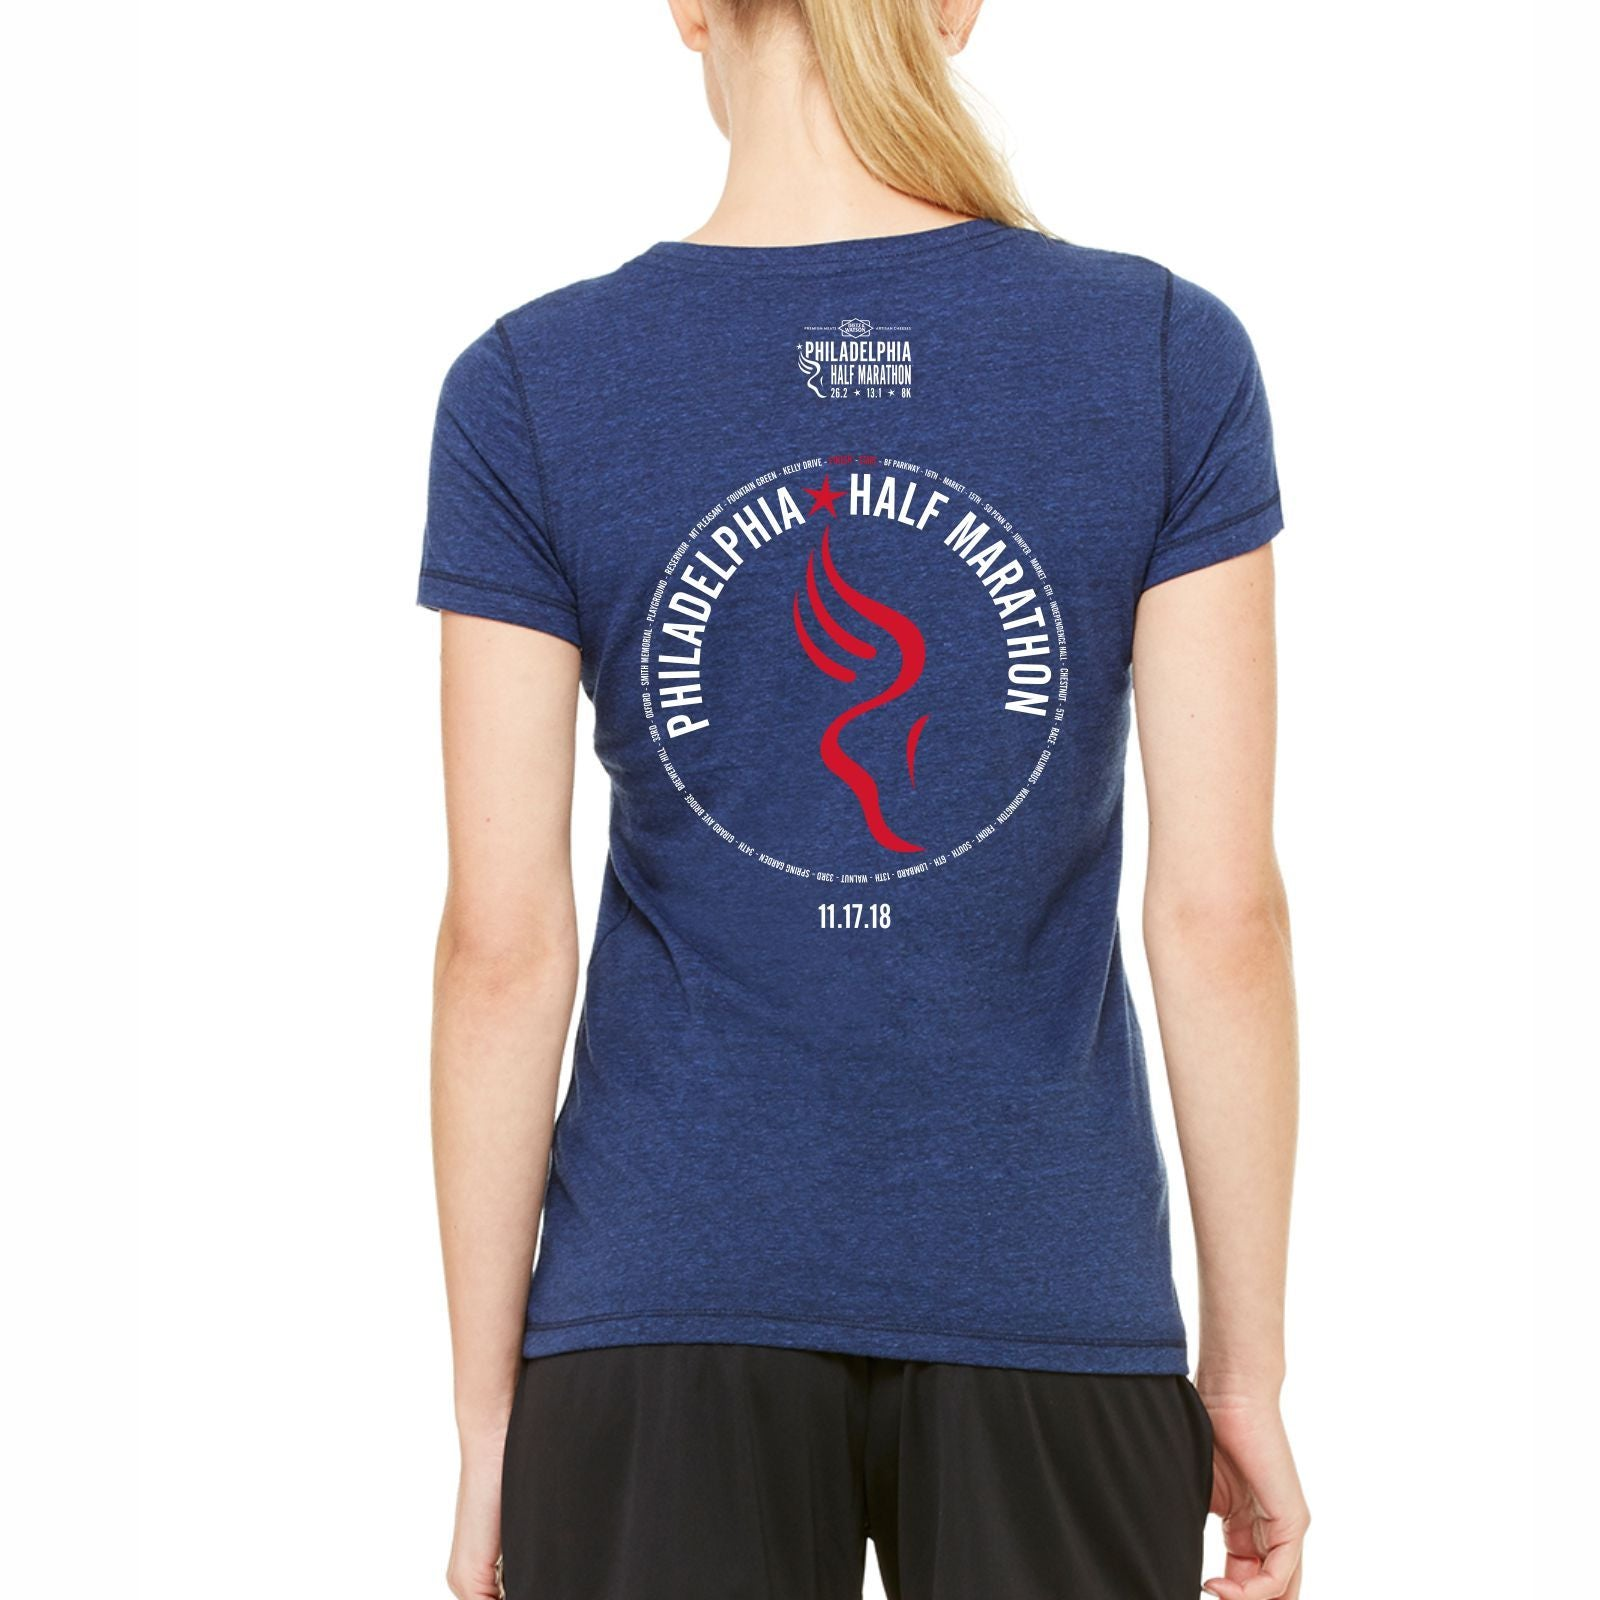 Dietz & Watson Philadelphia Half Marathon 'Directions 13.1' Women's SS Tri-Blend Tee - Navy Heather Triblend